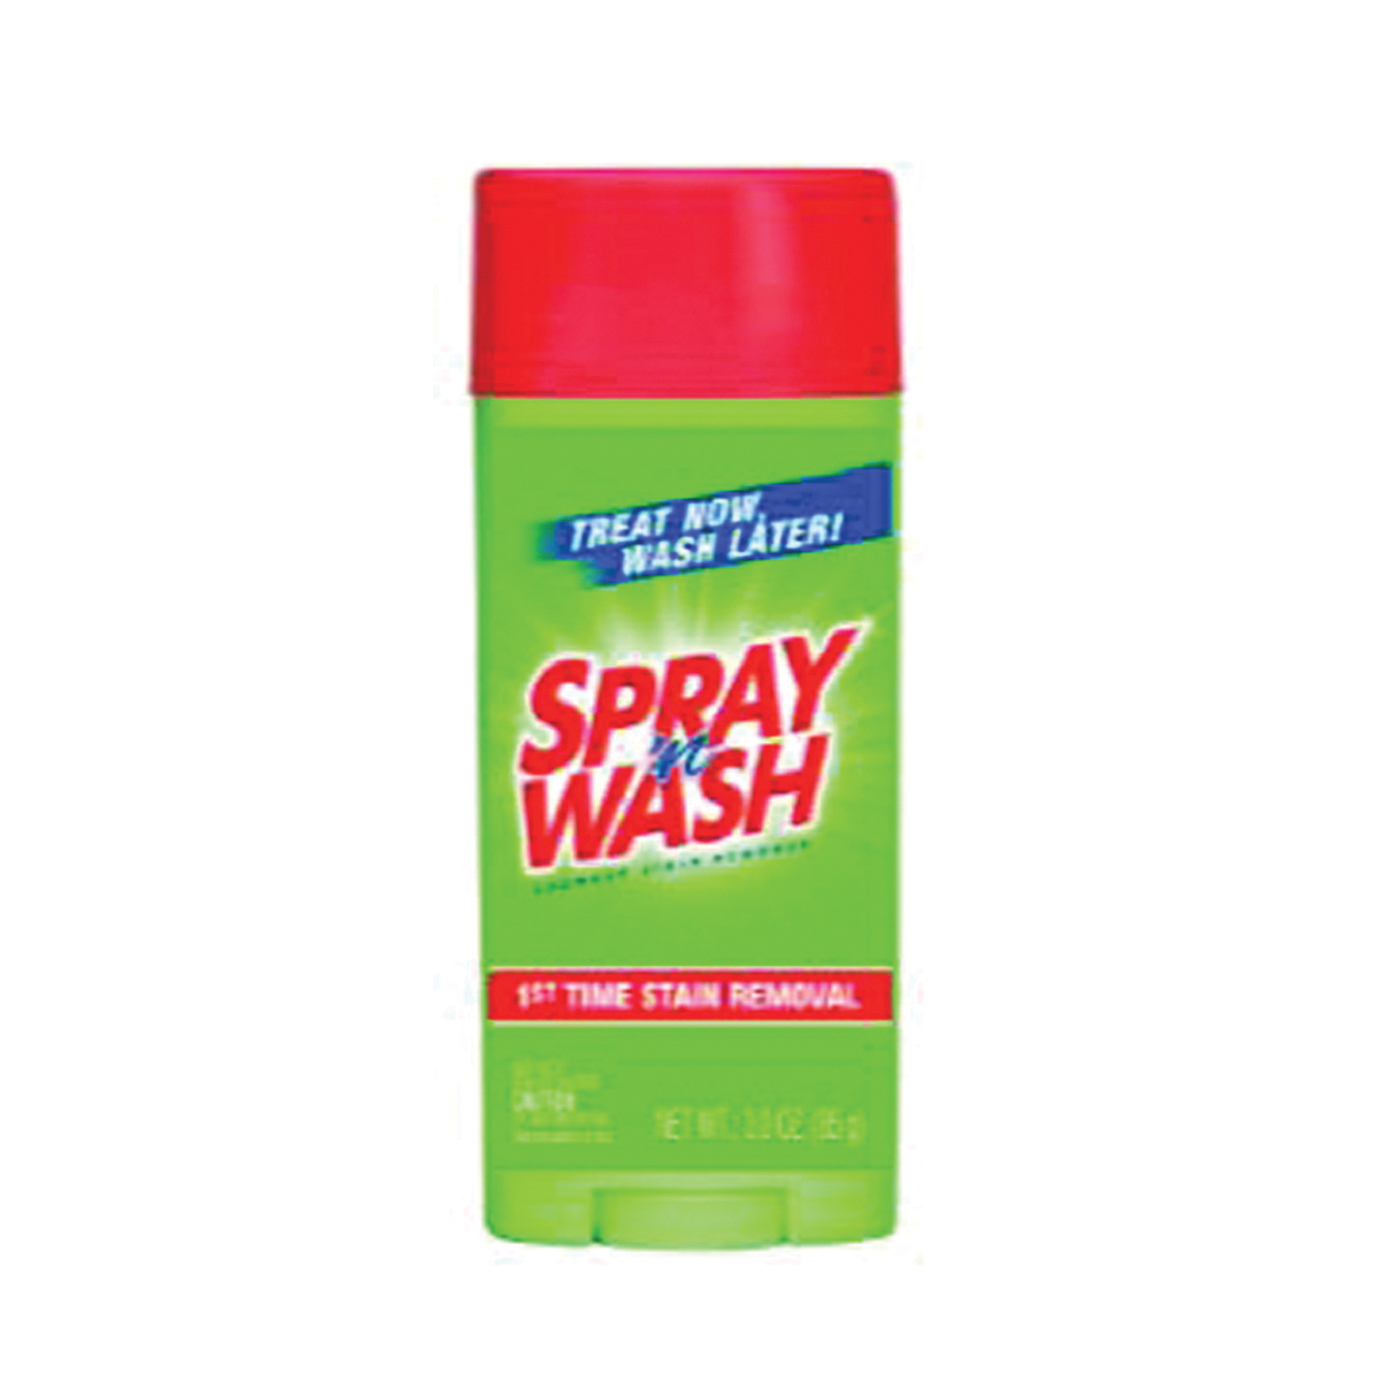 Picture of Spray 'n Wash 6233881996 Laundry Stain Remover, 3 oz Package, Waxy Solid, White